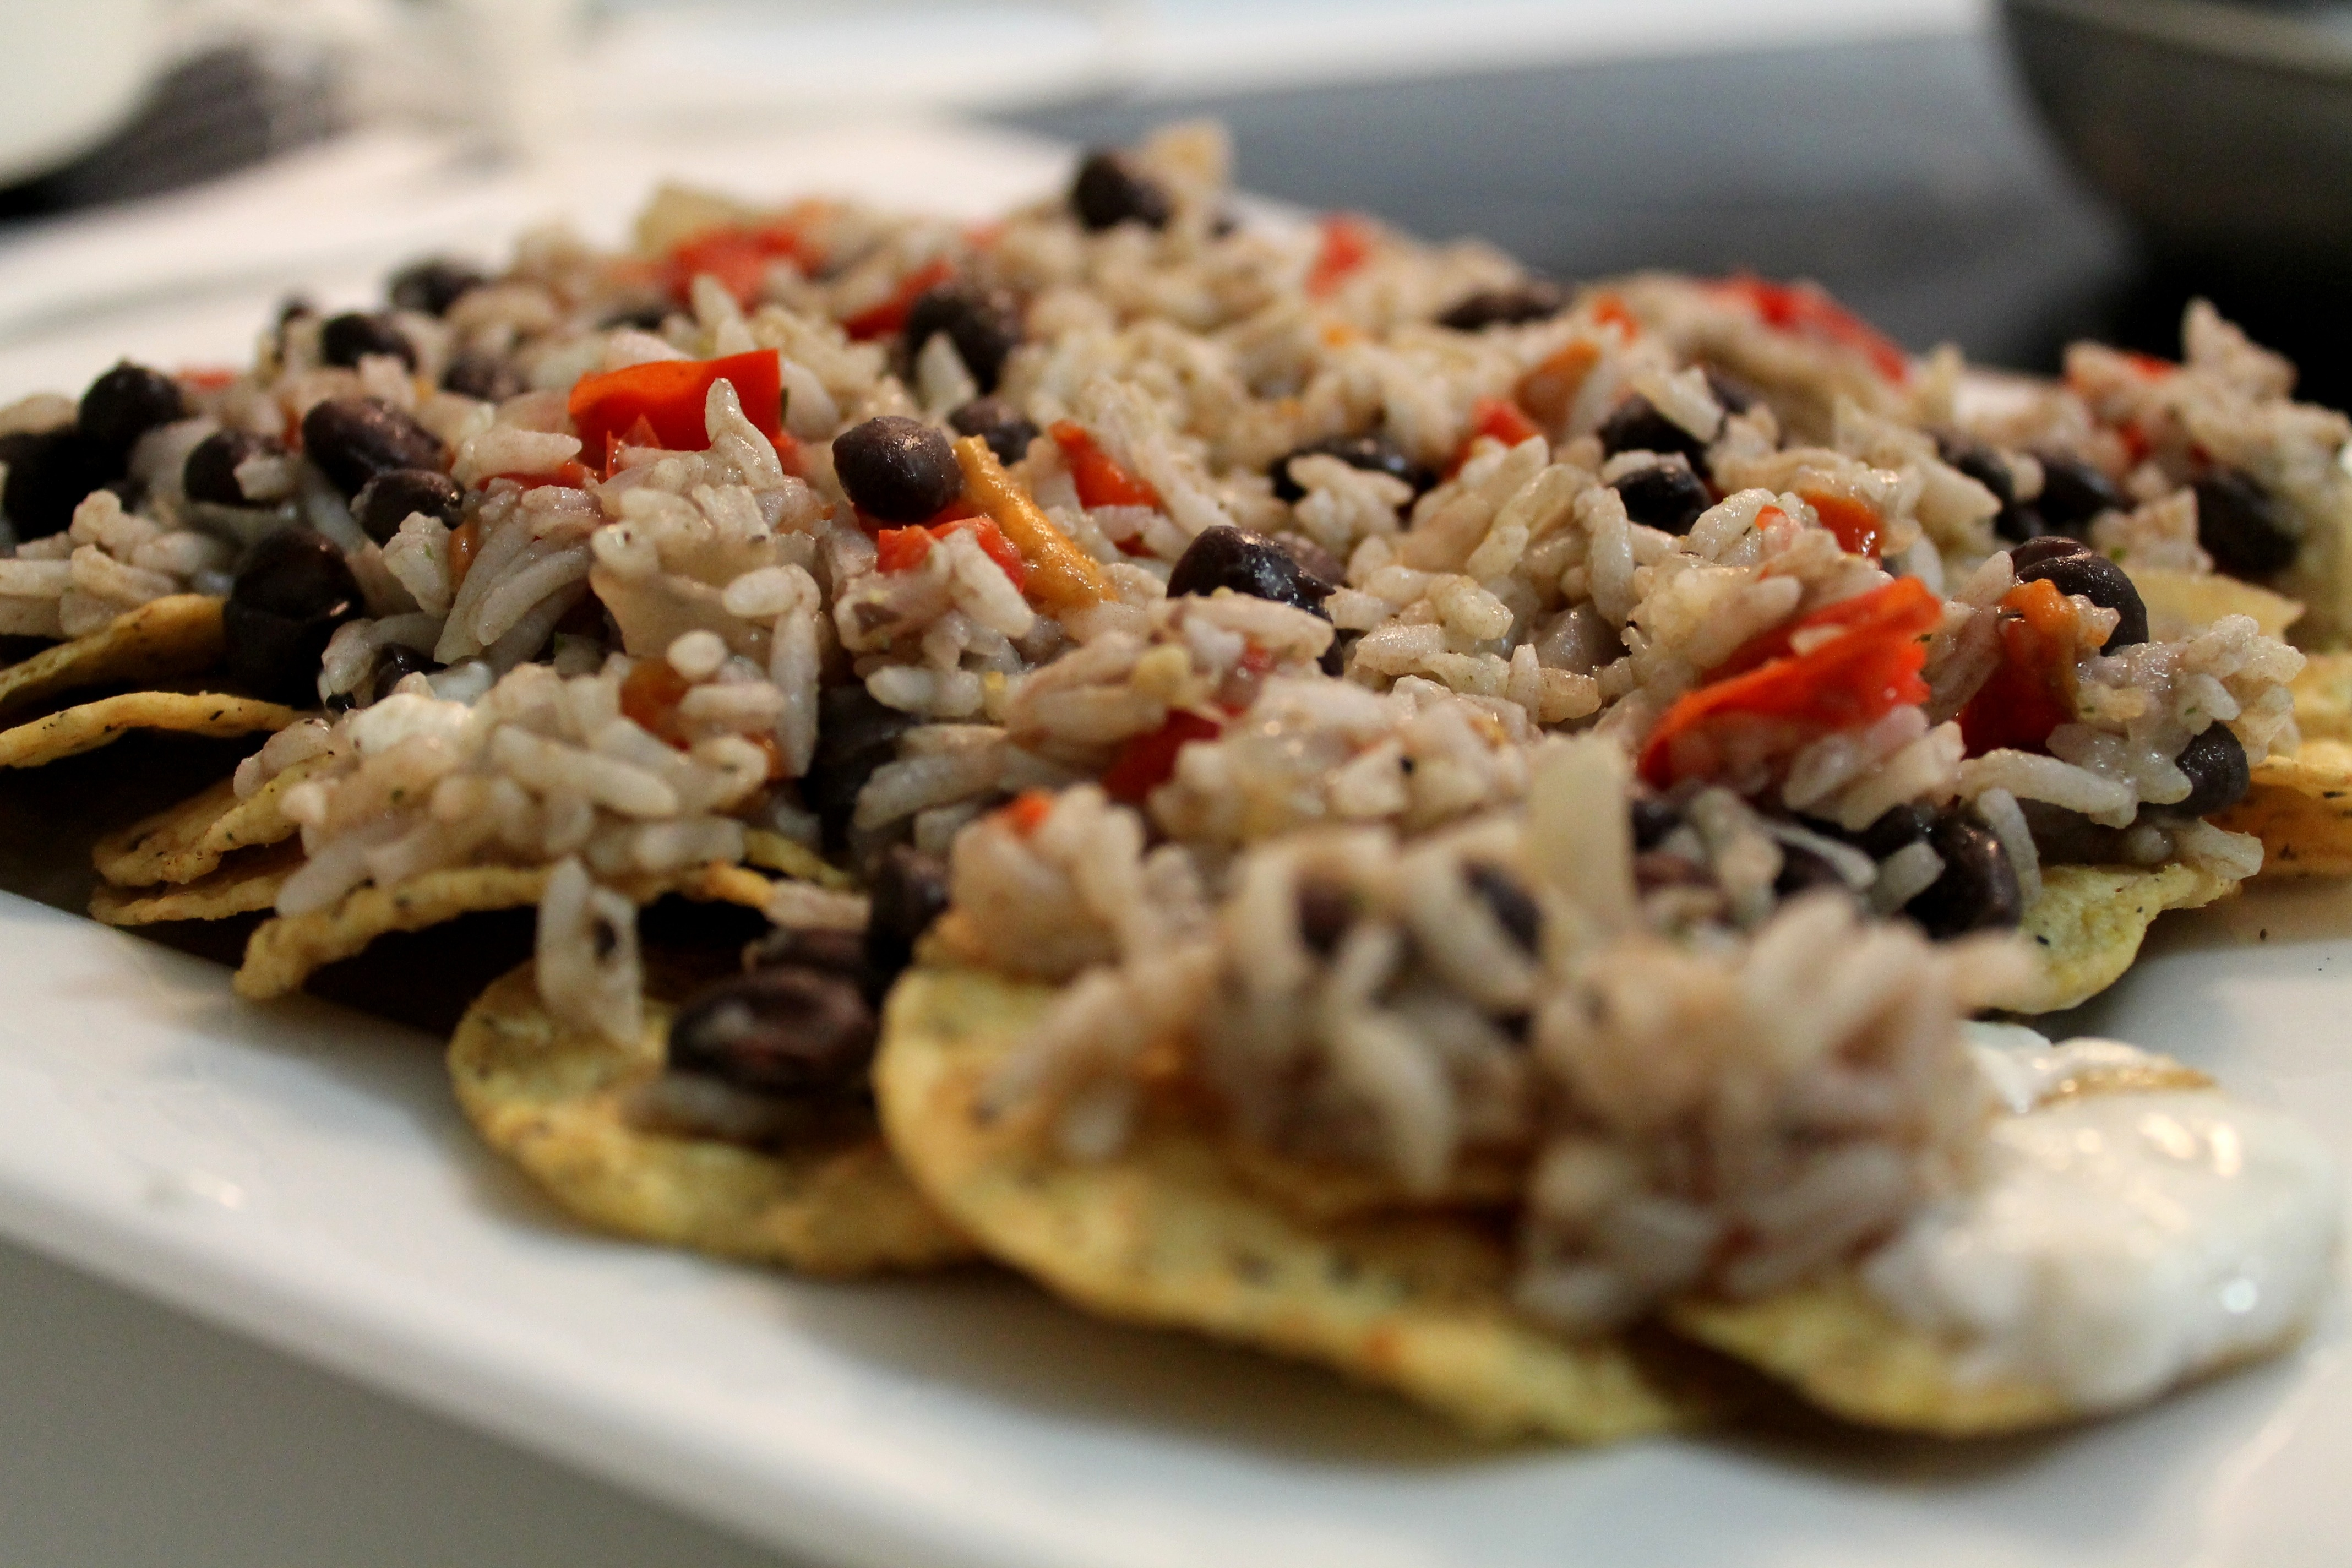 Costa Rica's Eye on the 2012 US Presidential Election Results and an Obama-Inspired Recipe for Gallo Pinto Guaco-Nachos to Celebrate the Democratic Win!